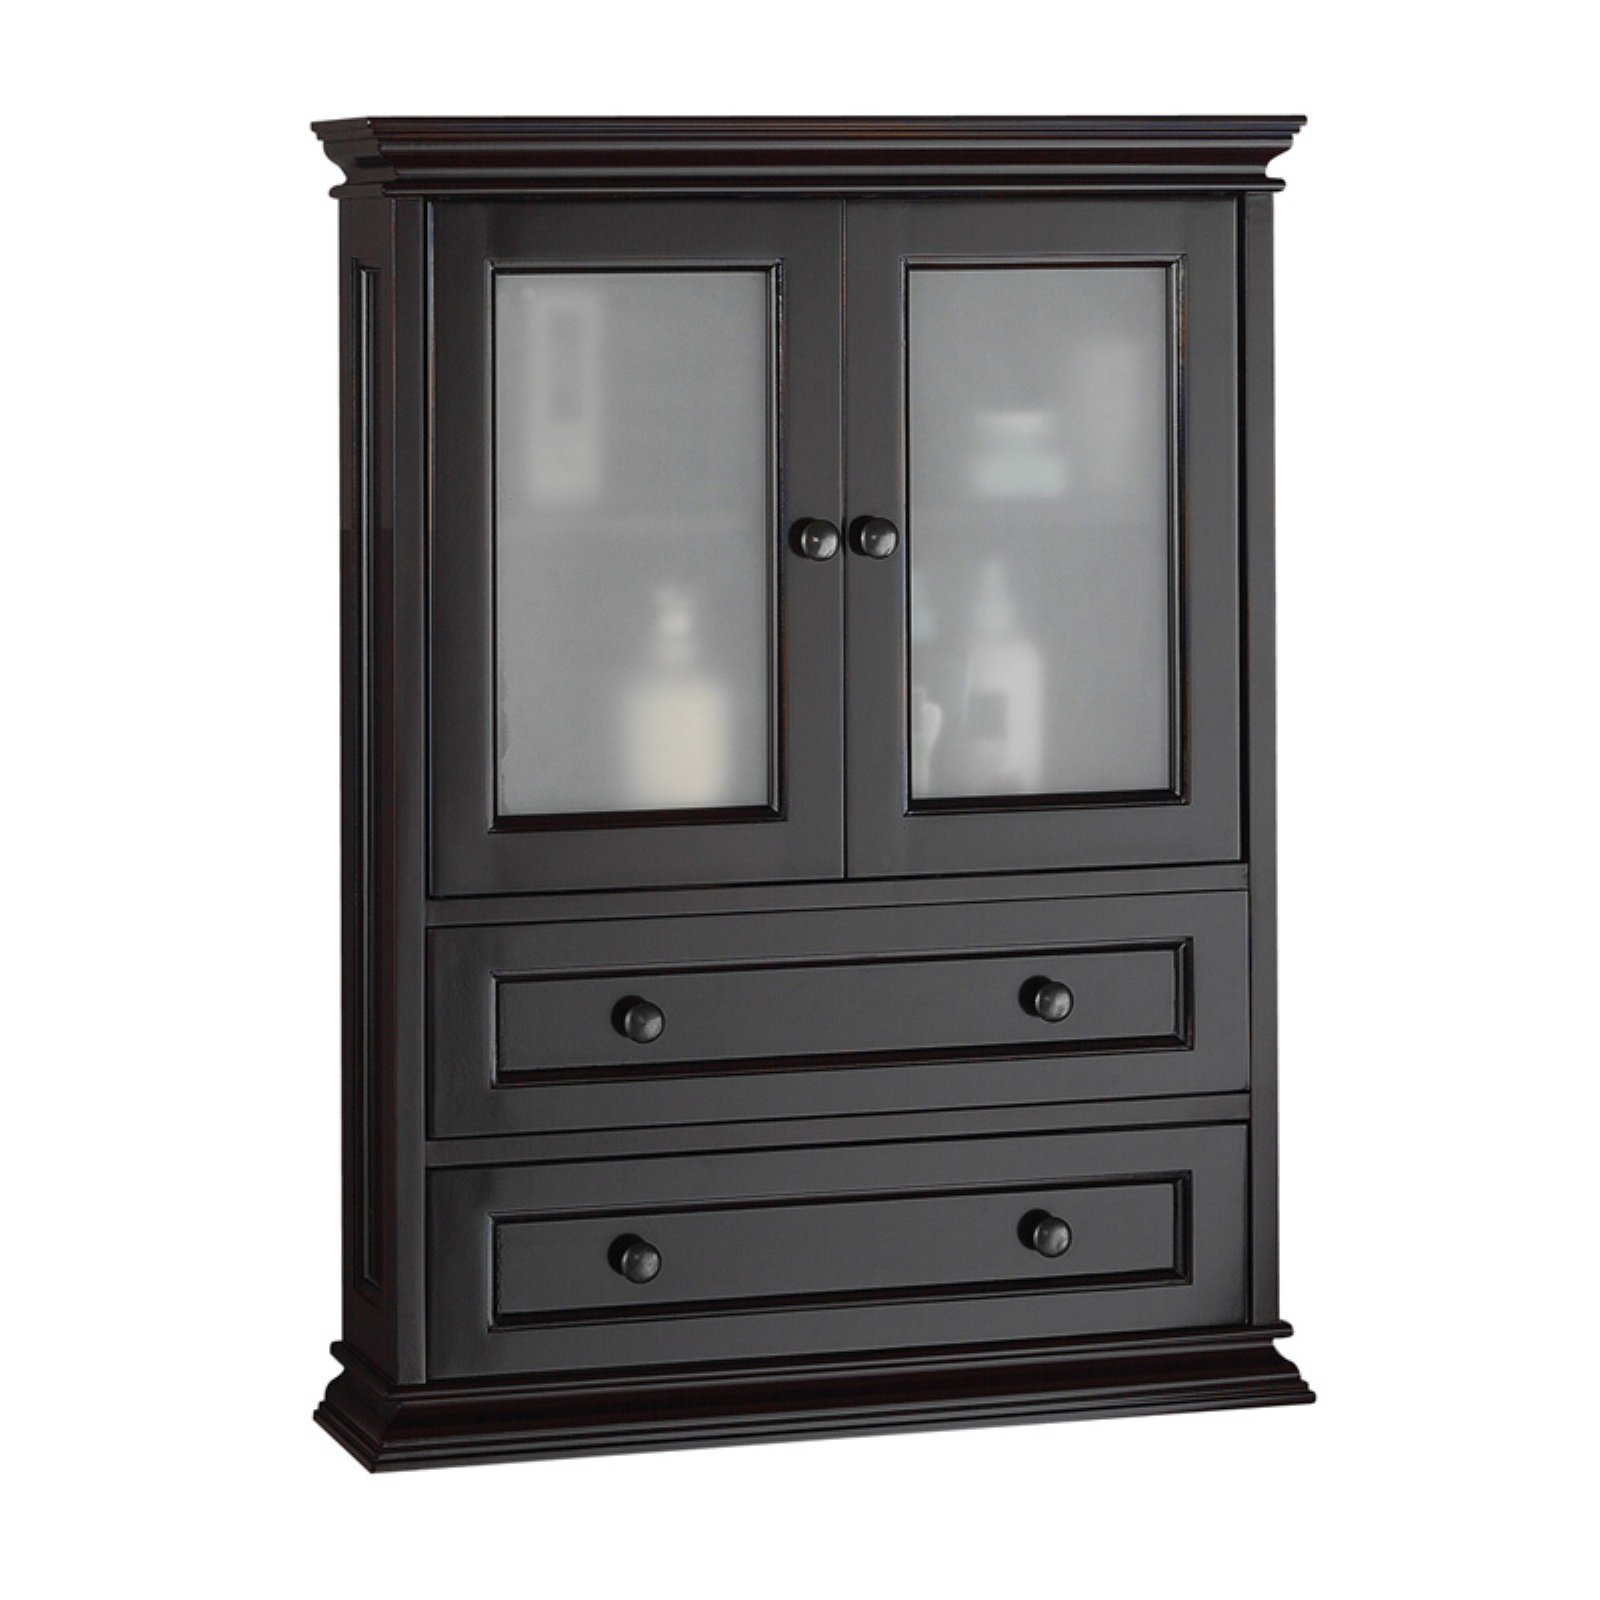 Foremost Berkshire Espresso Bathroom Wall Cabinet - Walmart.com